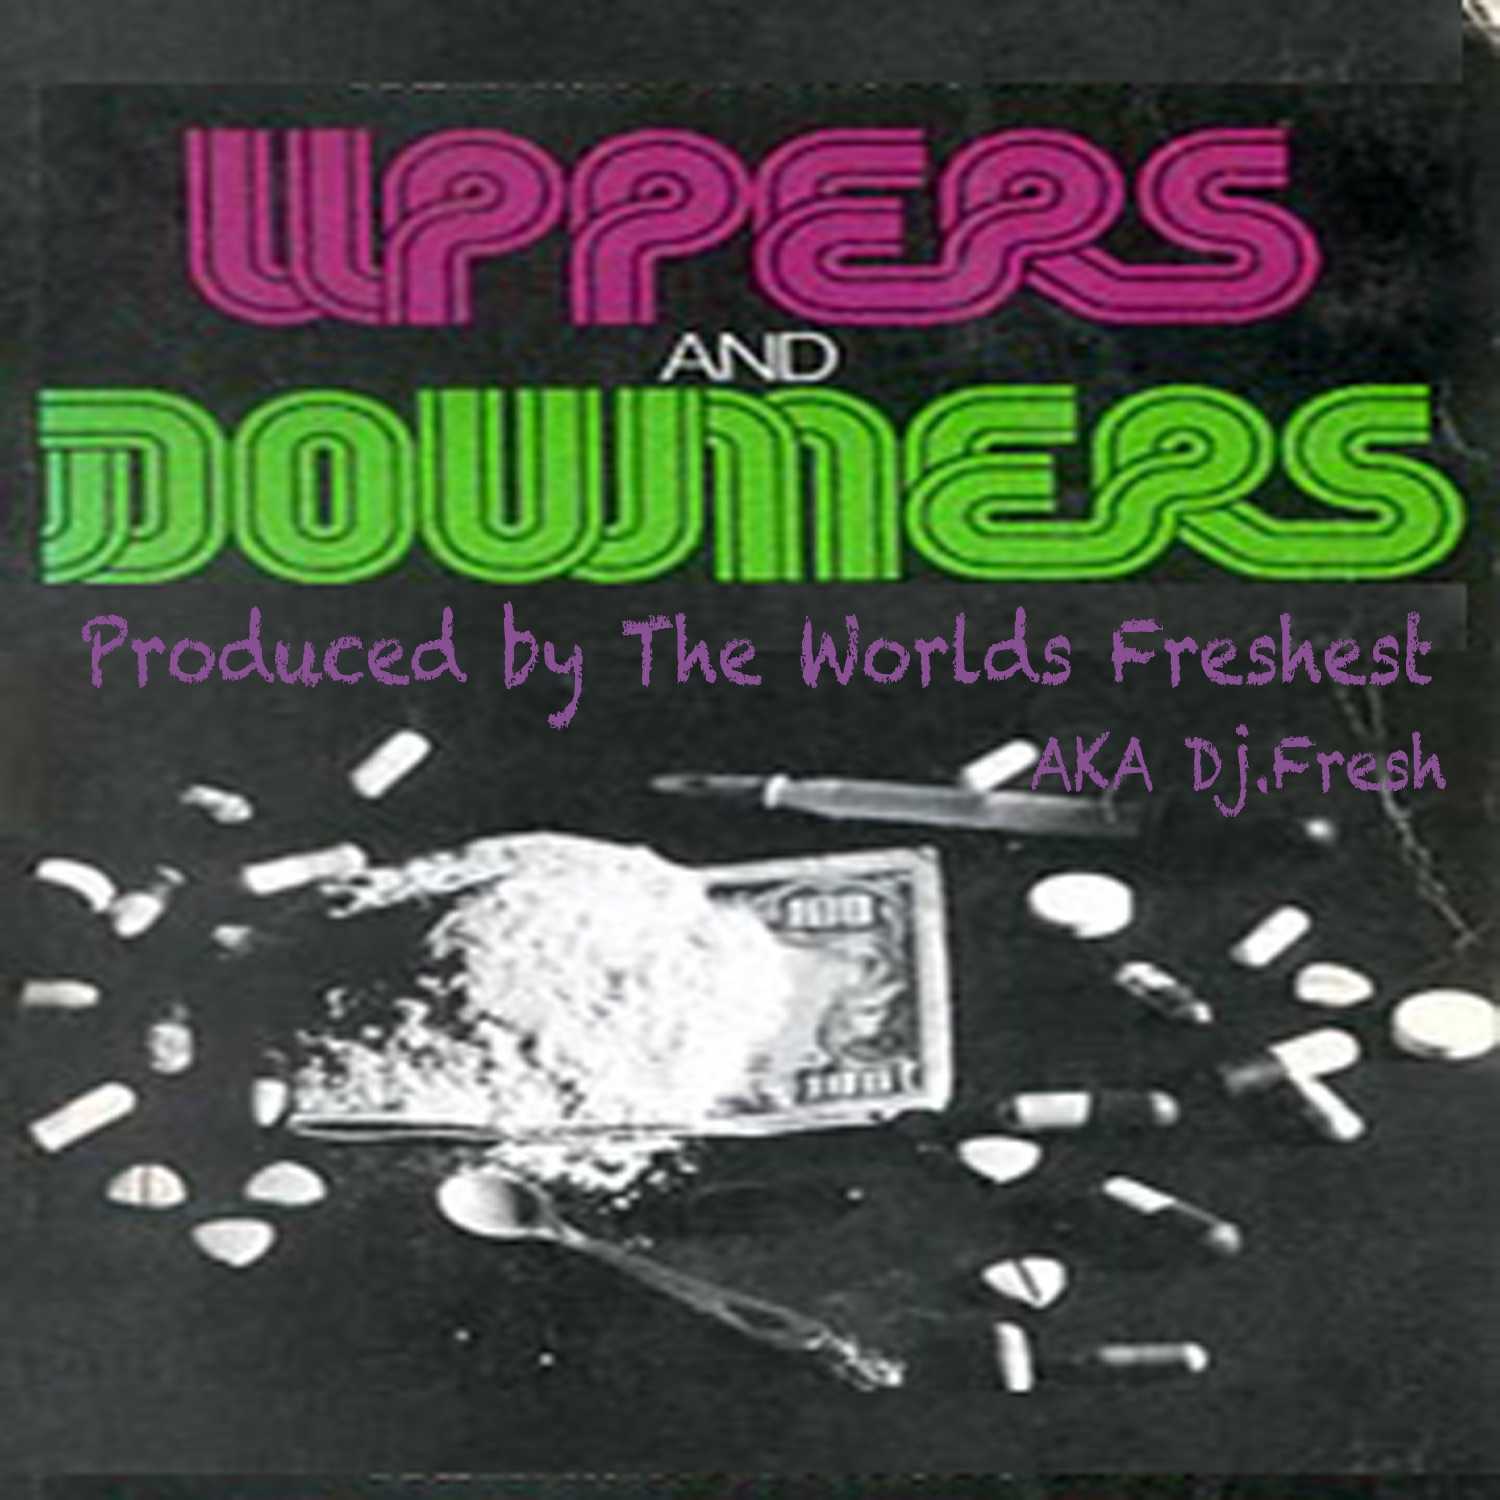 Uppers and Downers - EP